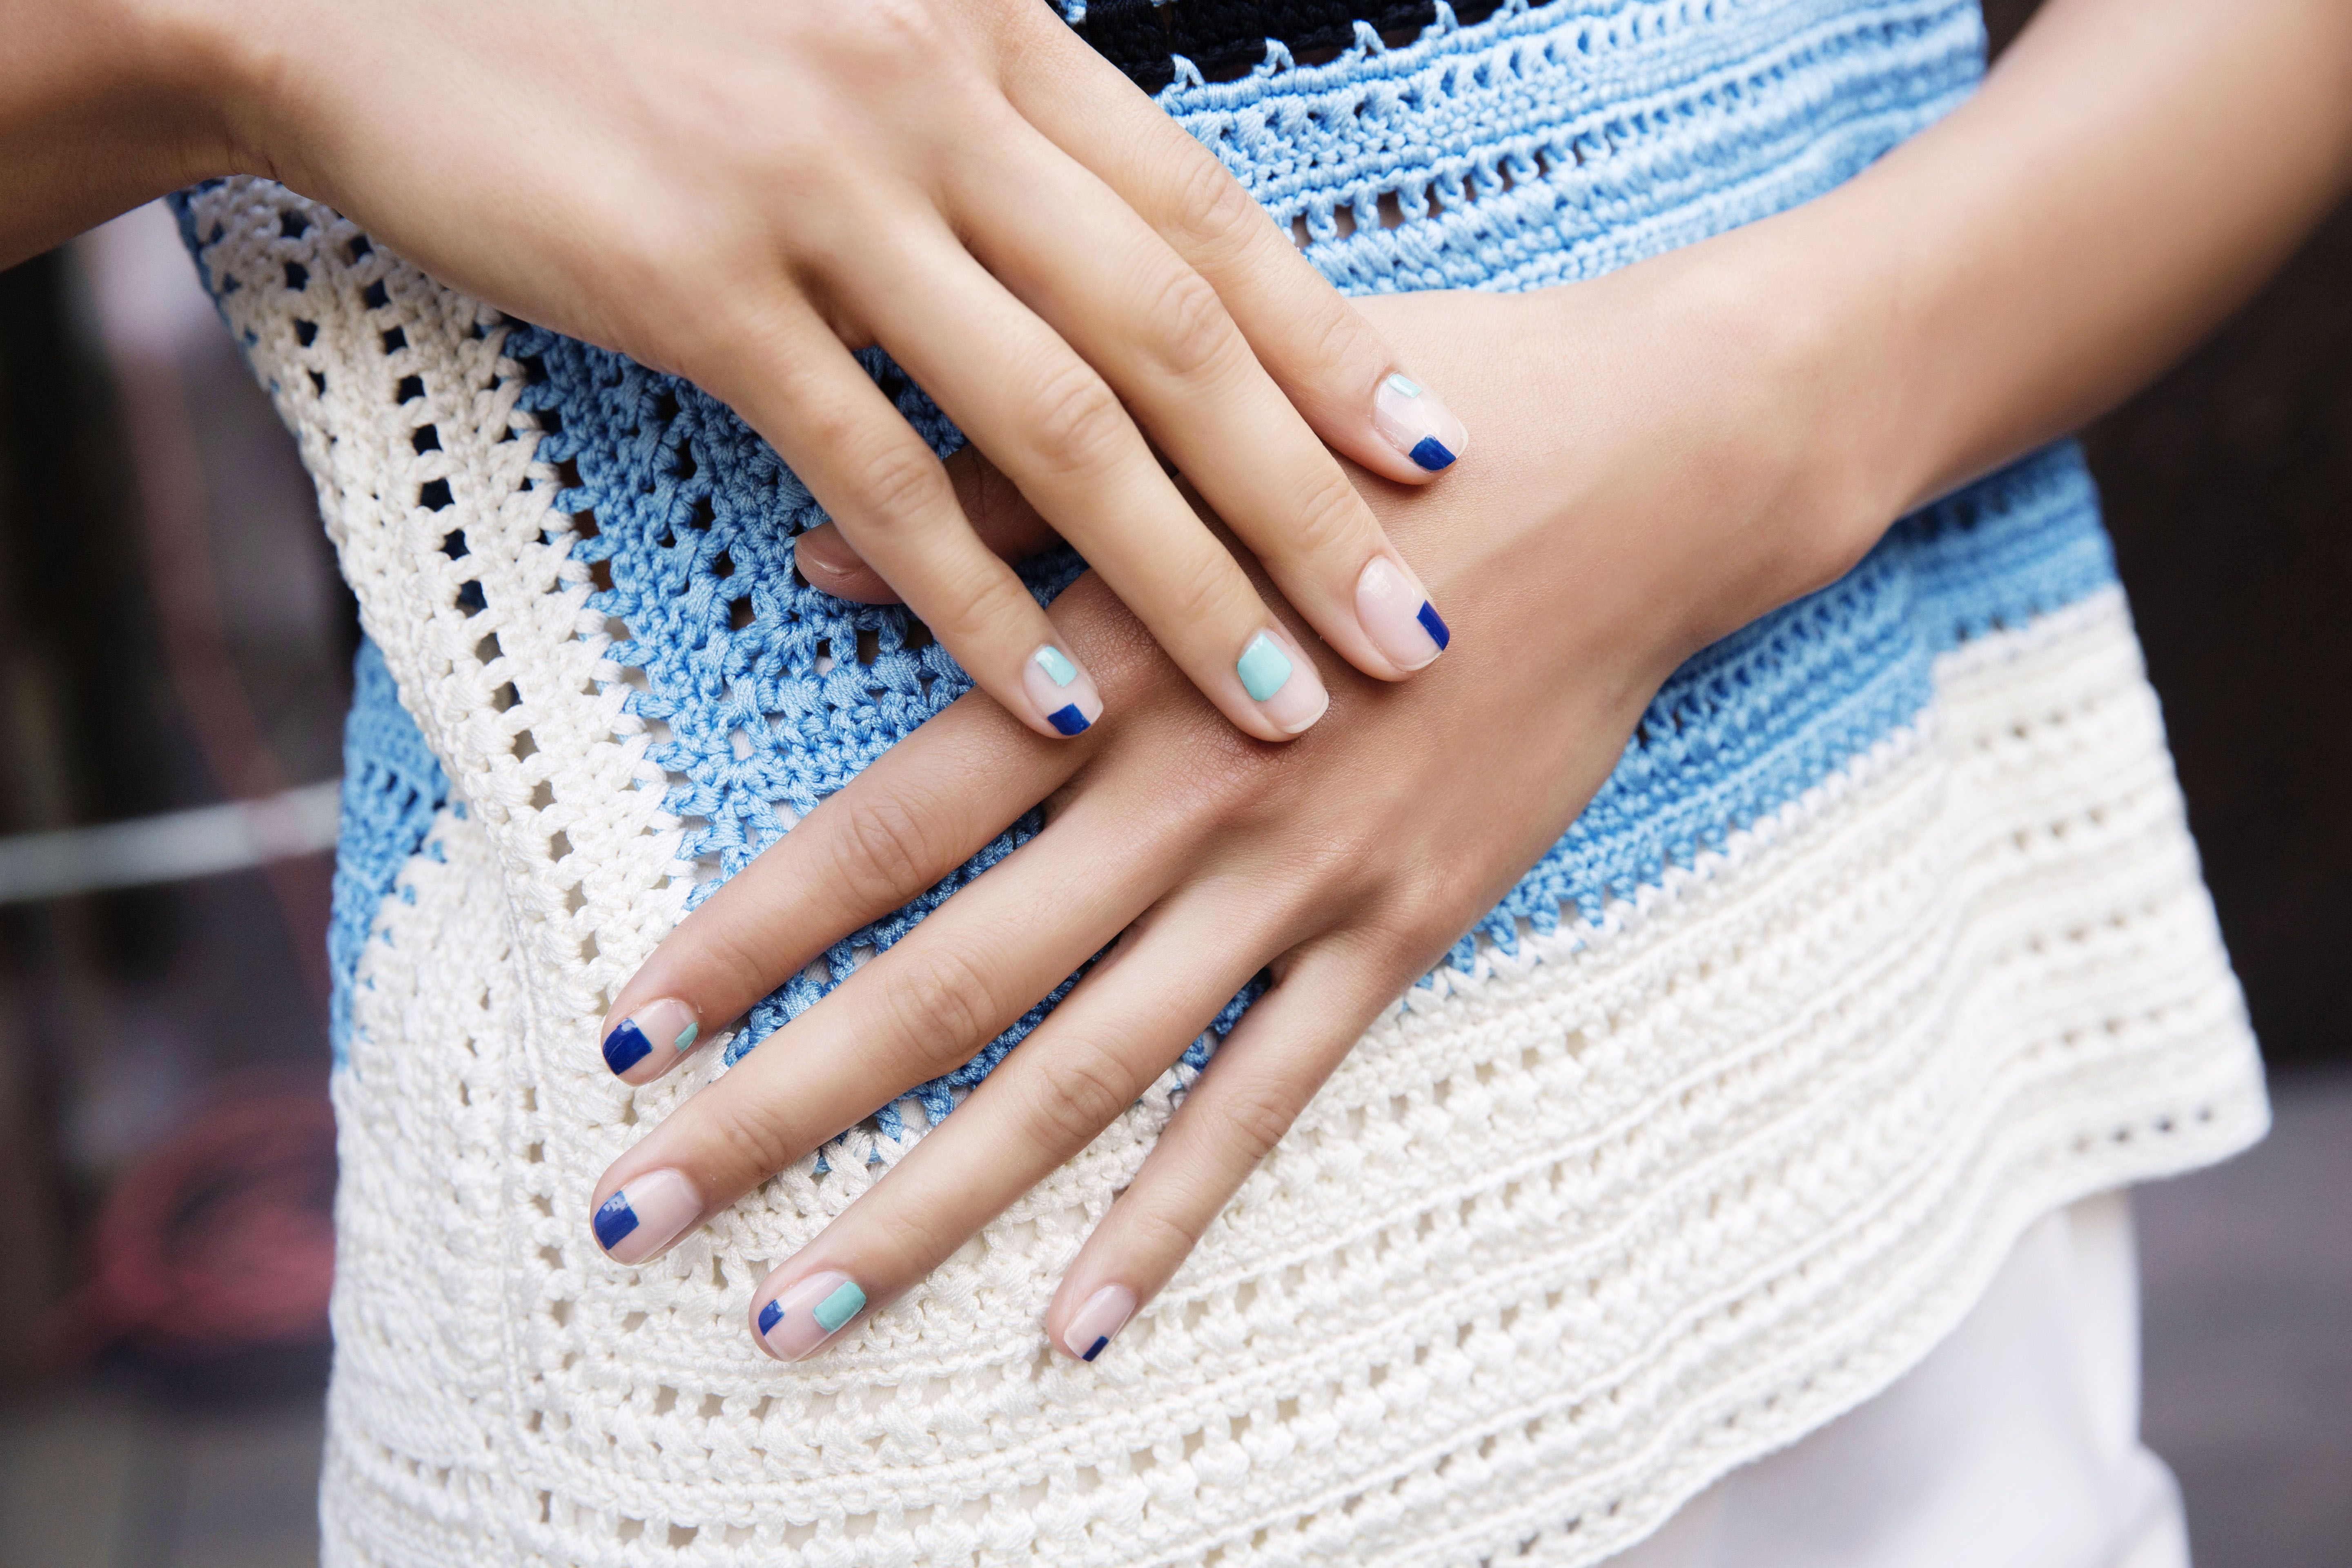 24 New Nail Ideas for 2017 | Makeup, Nail trends and Manicure